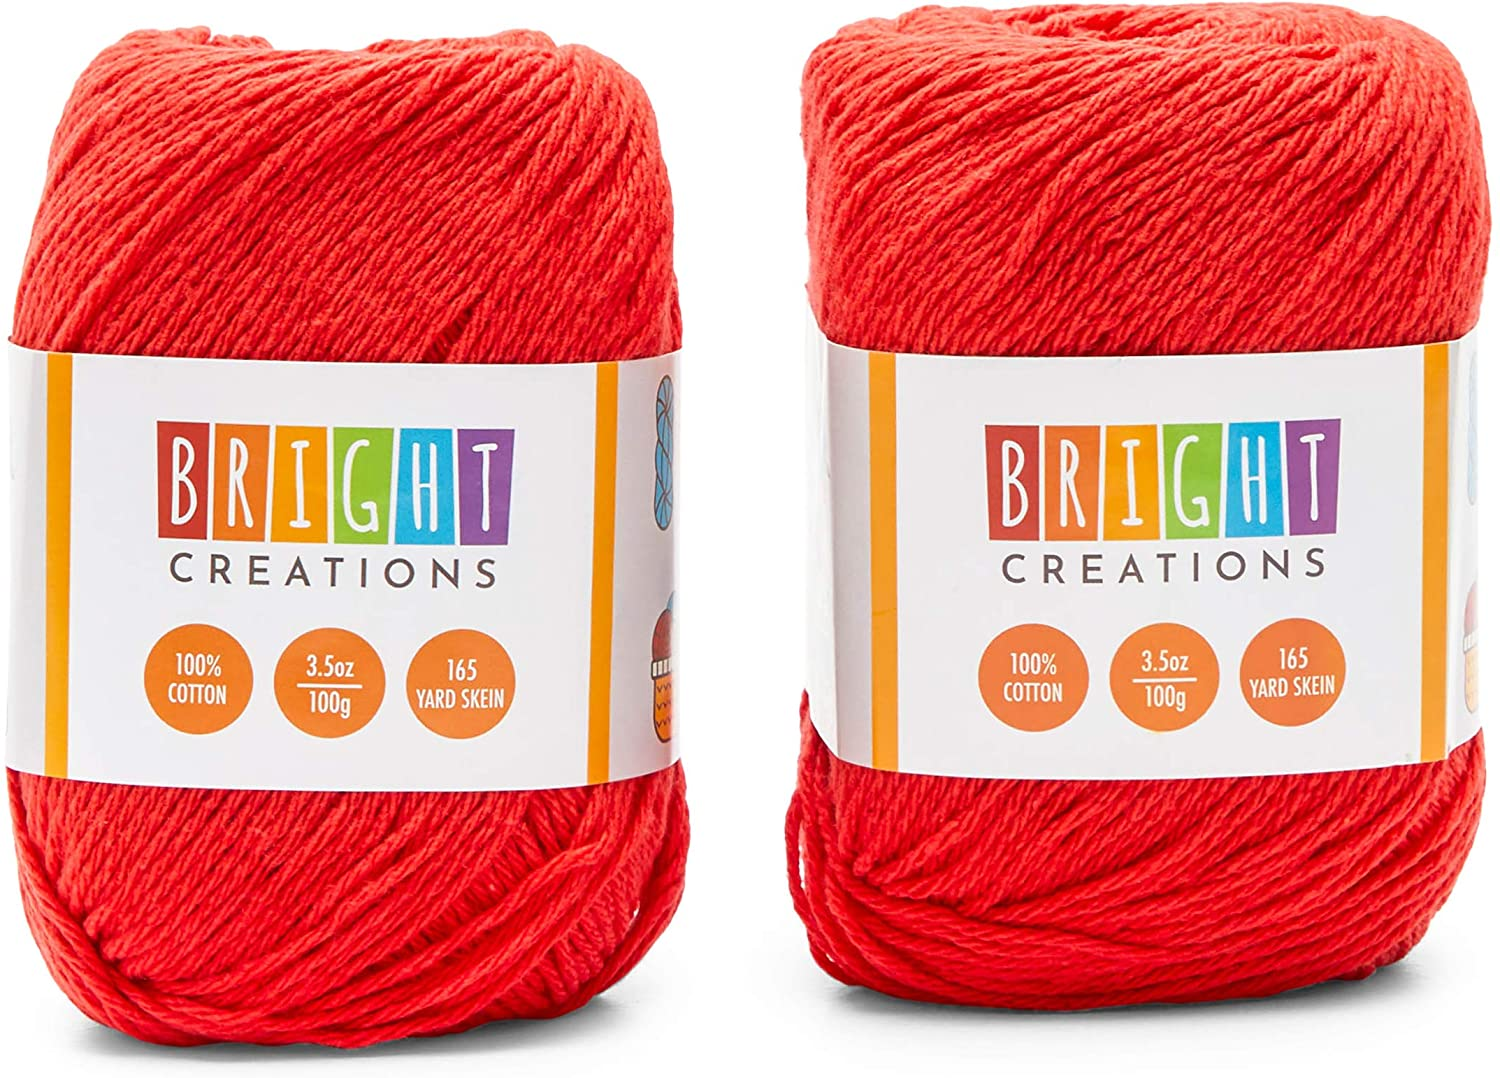 Red Cotton Skeins Yarn for Knitting, Crocheting, Crafts (330 Yards, 2 Pack)